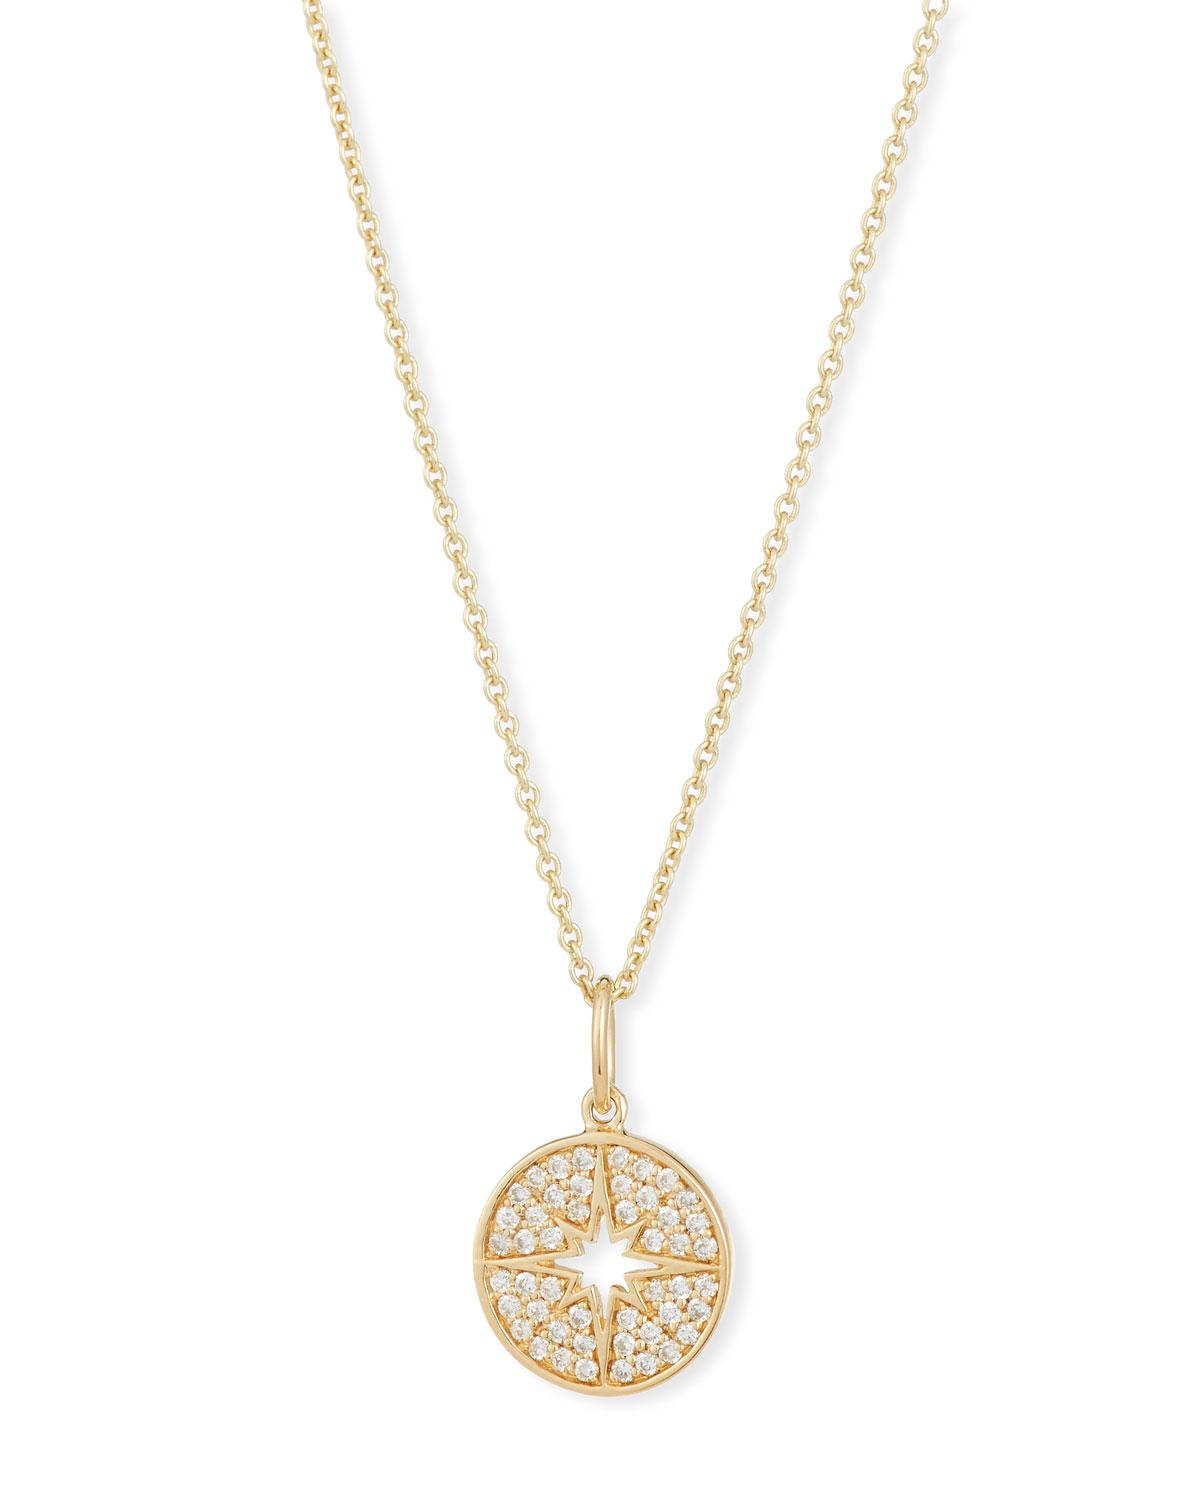 Sydney Evan Small Starburst Charm Collar Necklace in 14K Gold OAt0GX